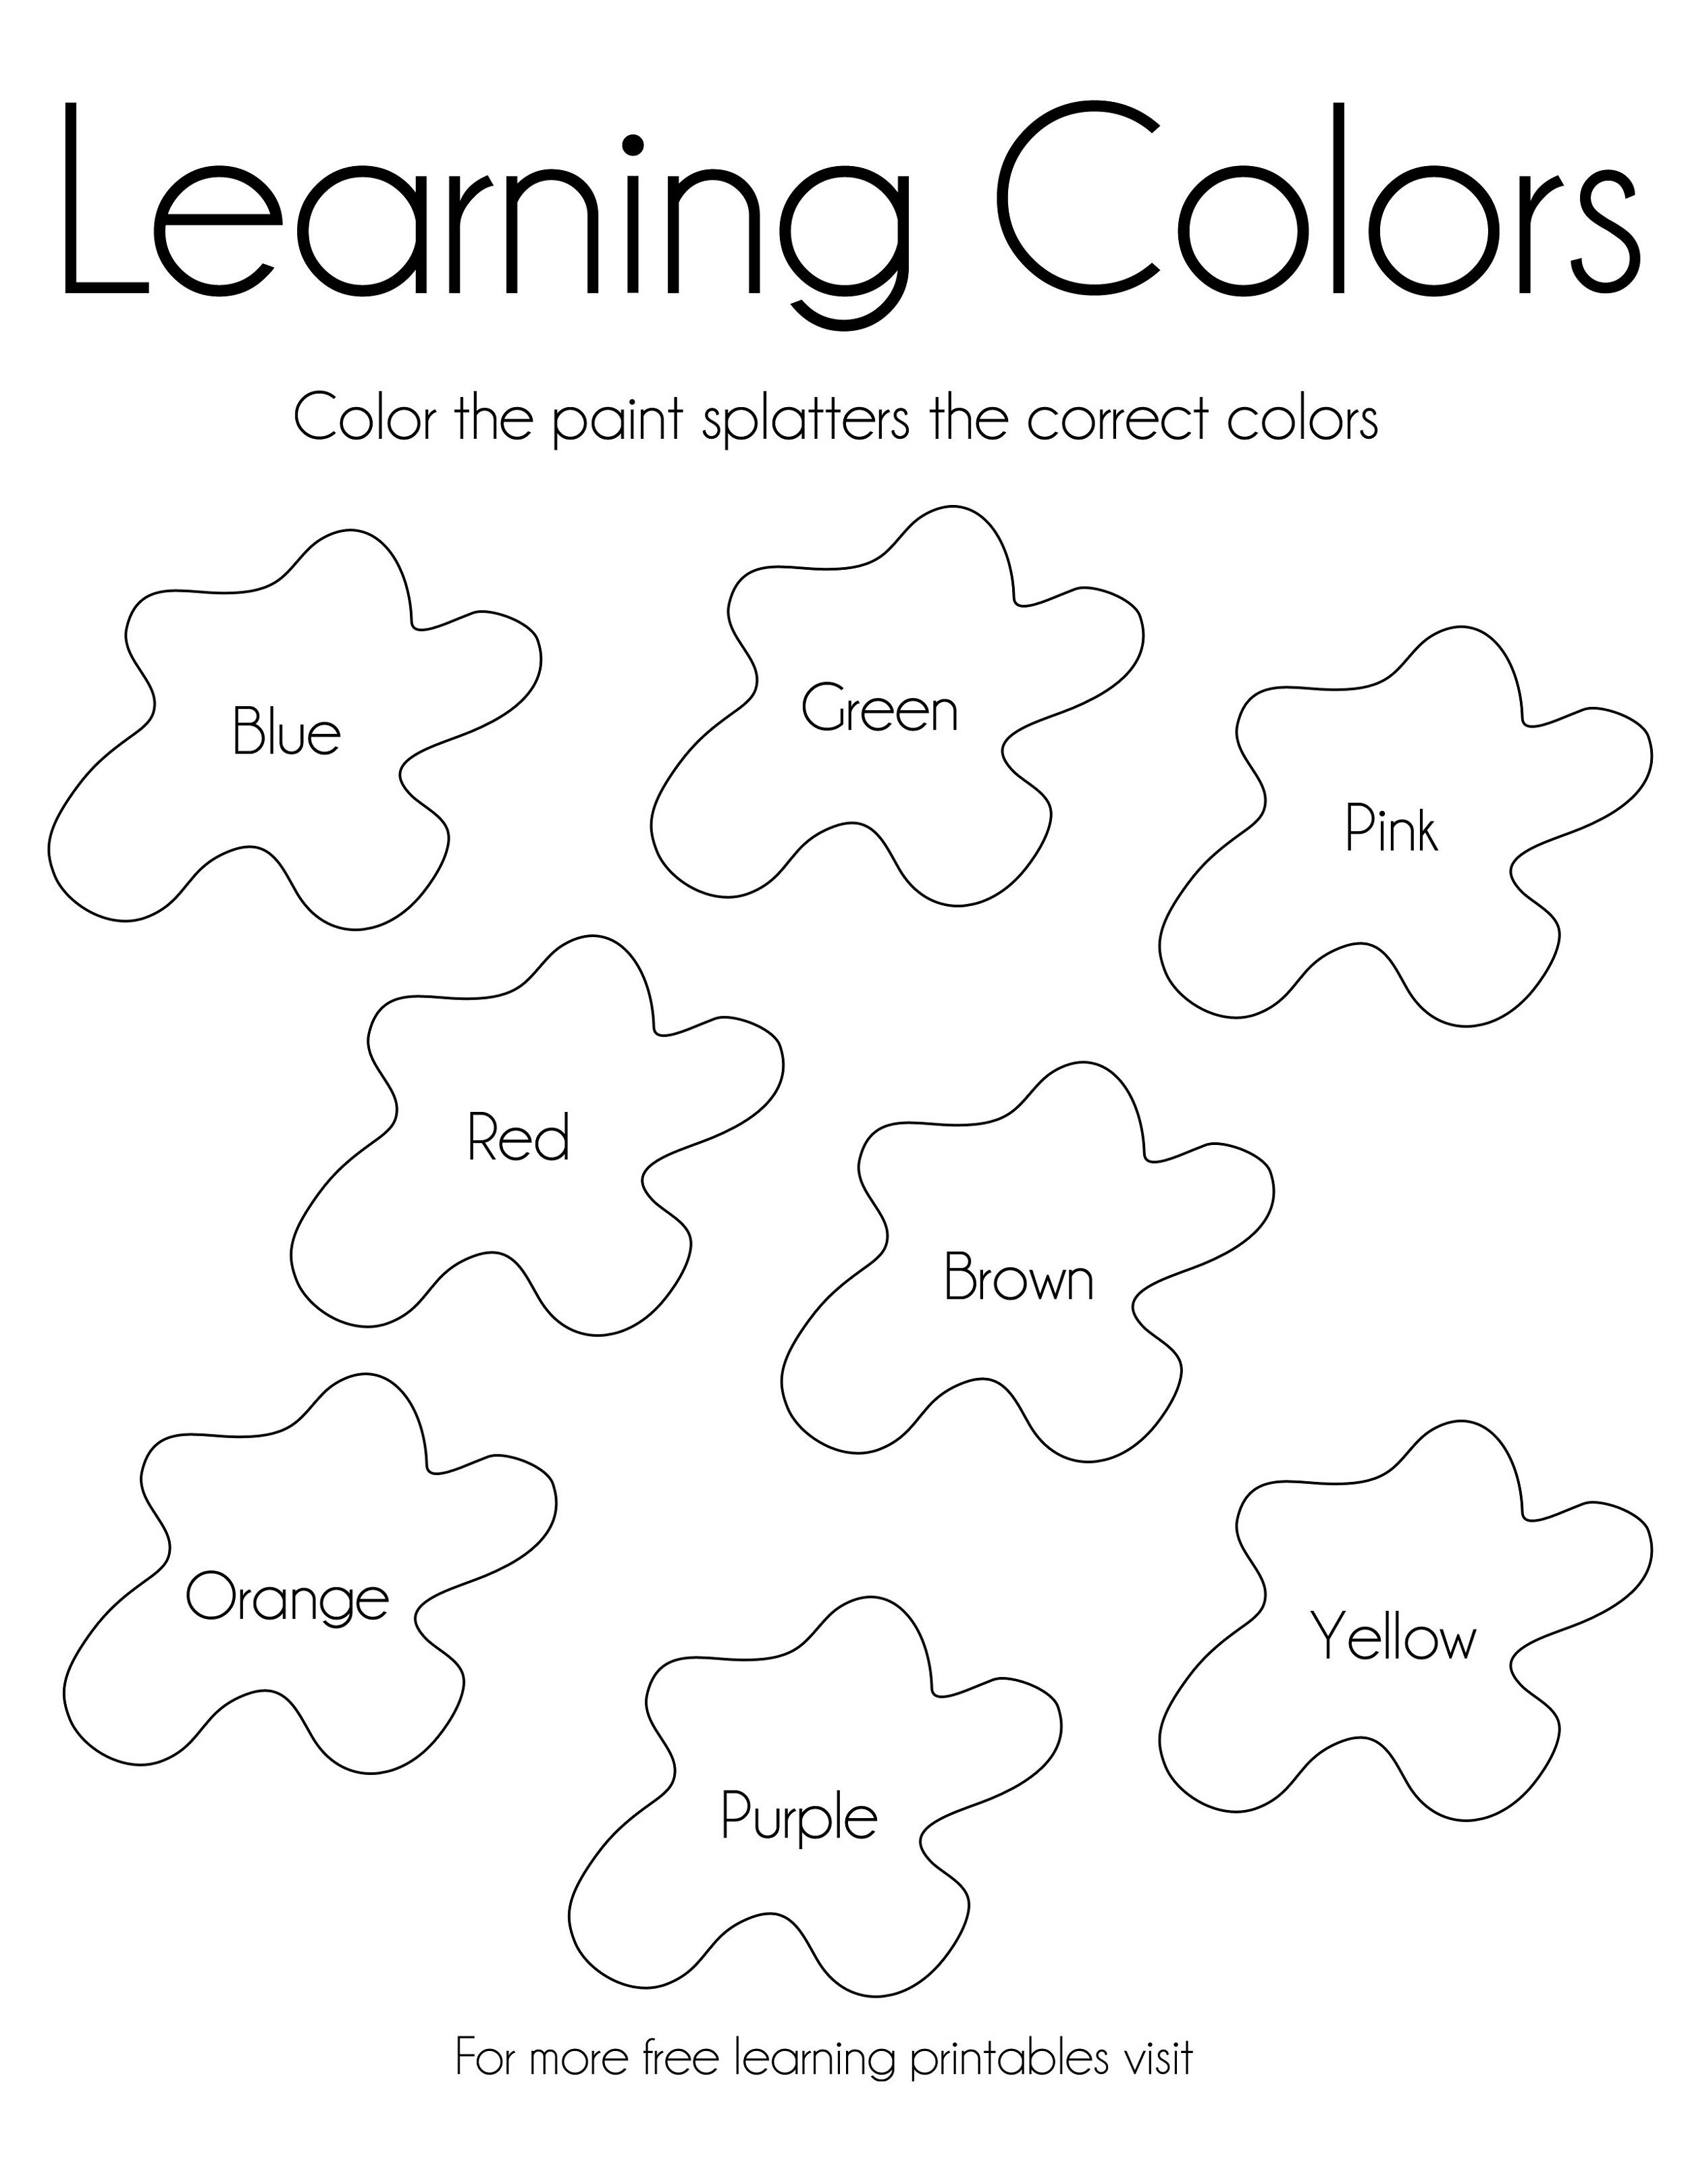 Activity Sheets For 5 Year Olds Funny Learning Colors Kids